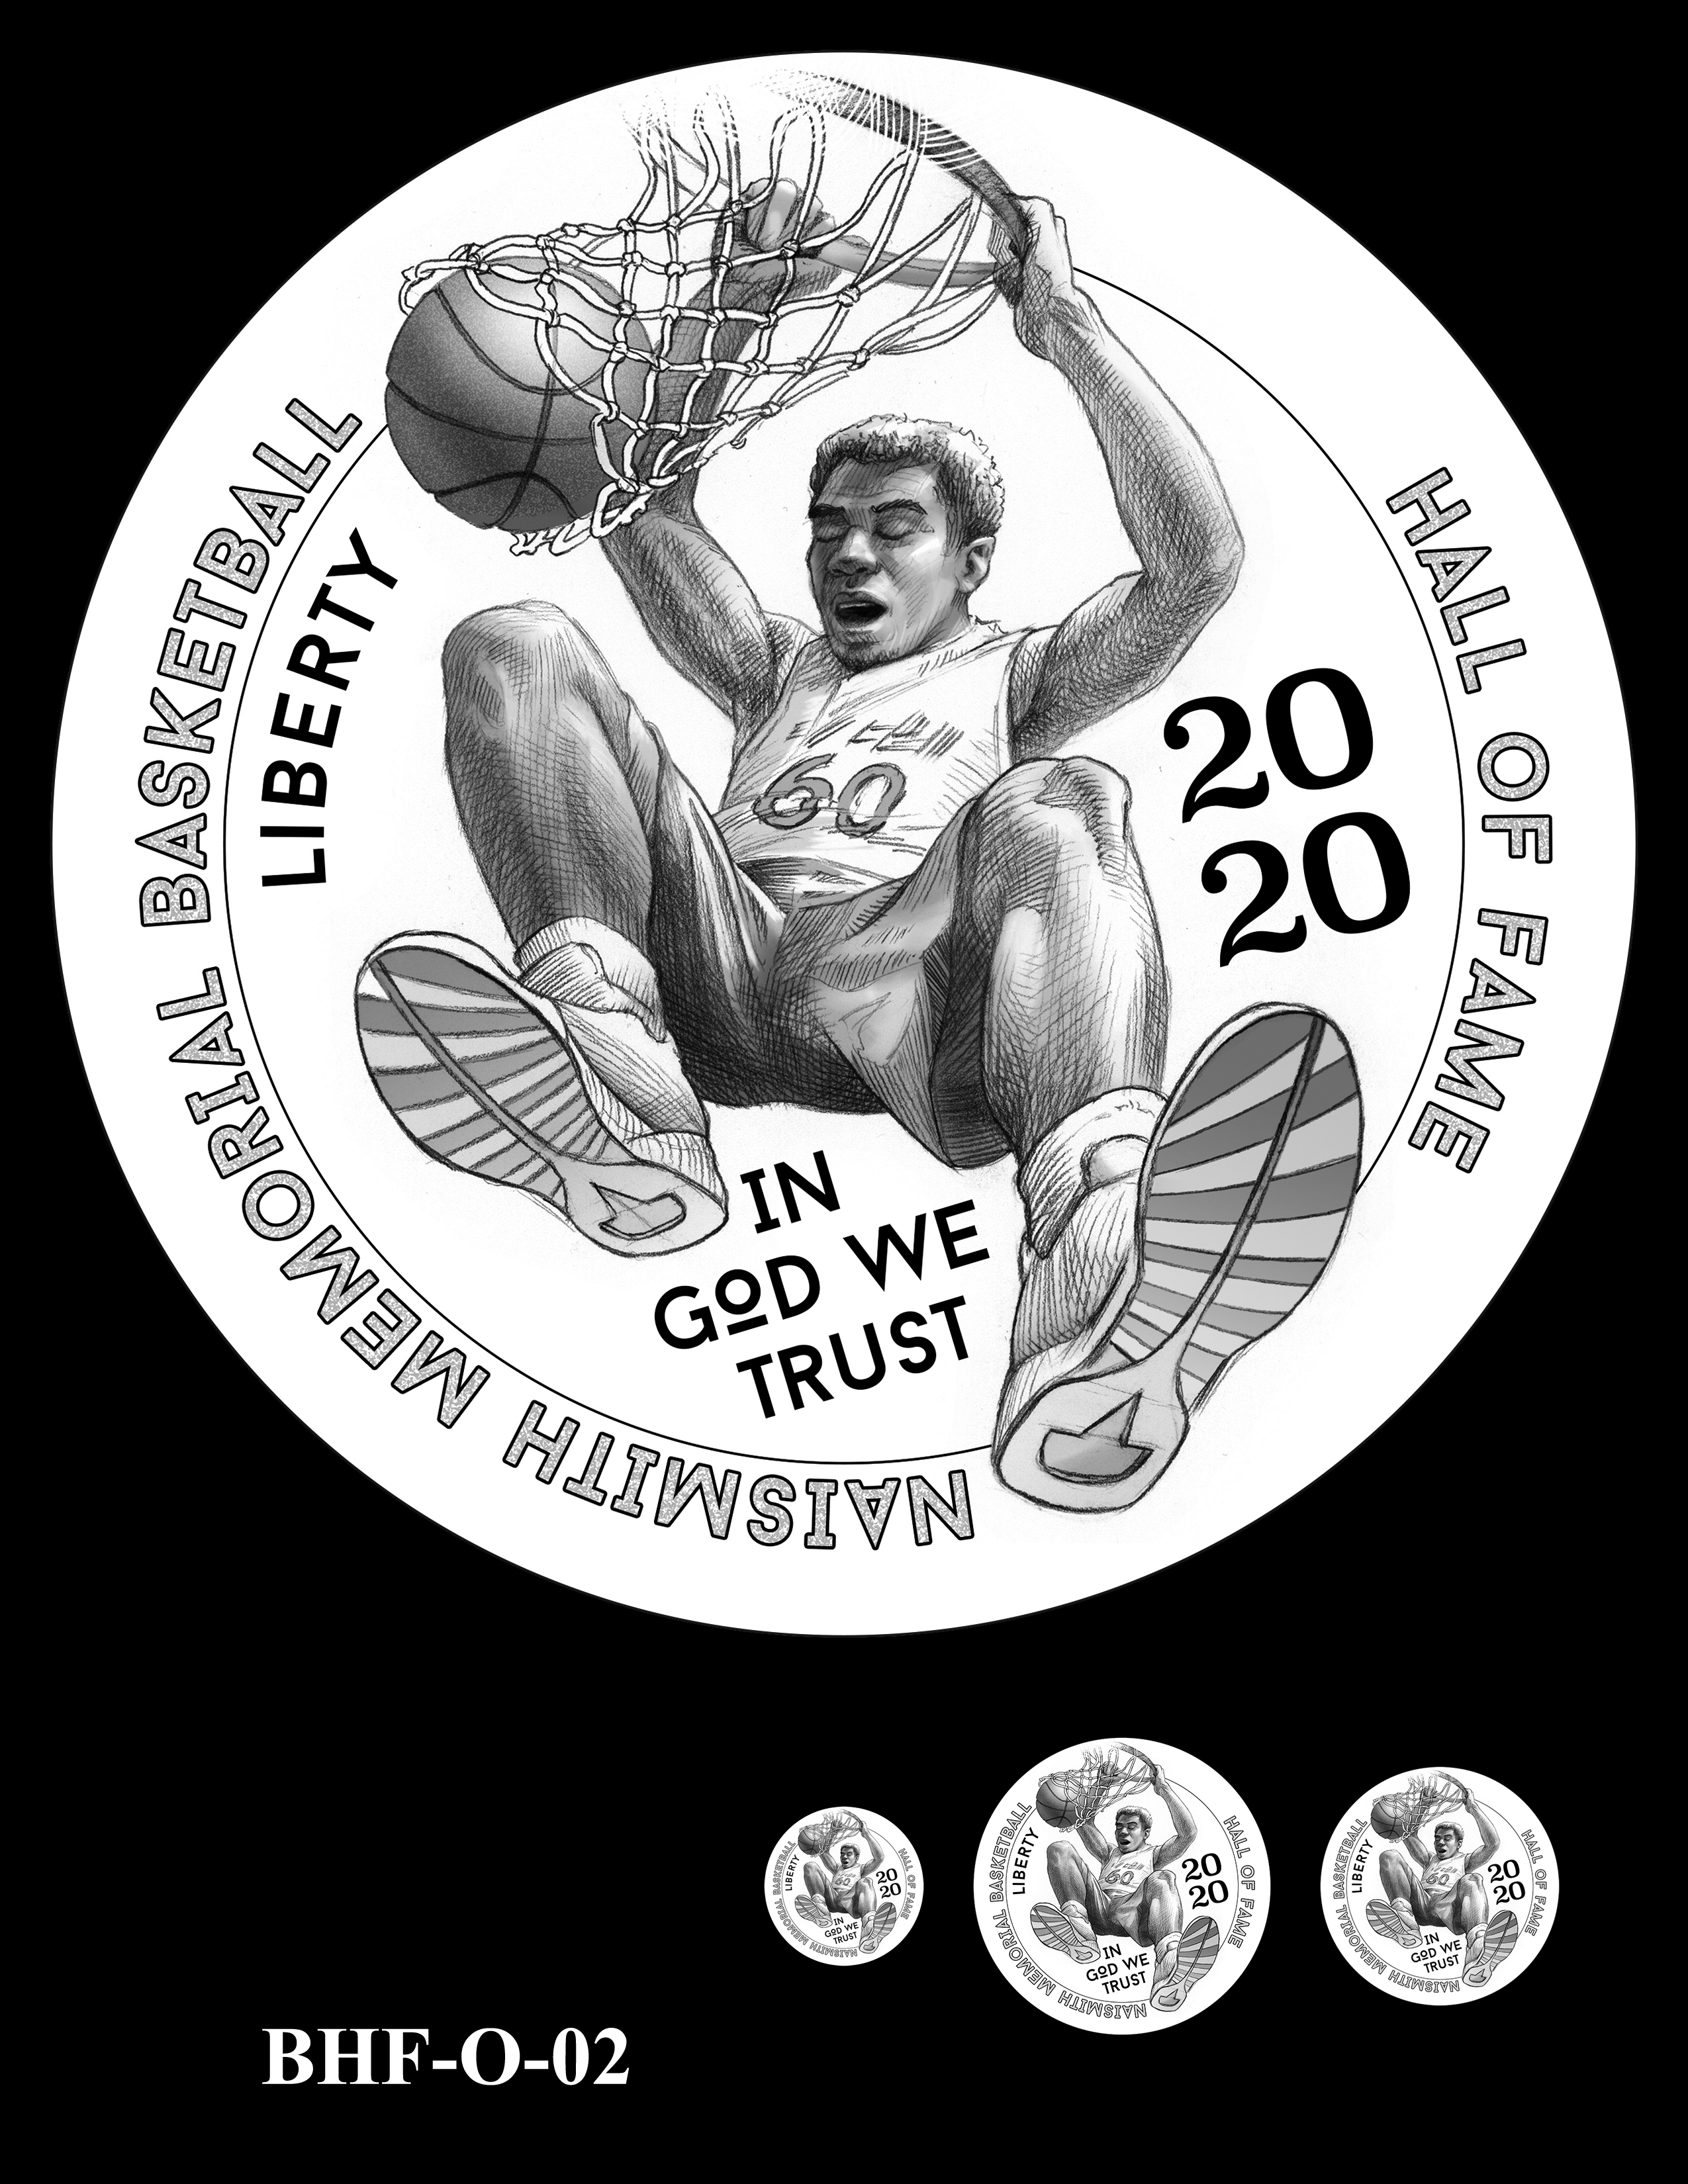 BHF-O-02 -- 2020 Basketball Hall of Fame Commemorative Coin Program - Common Obverse